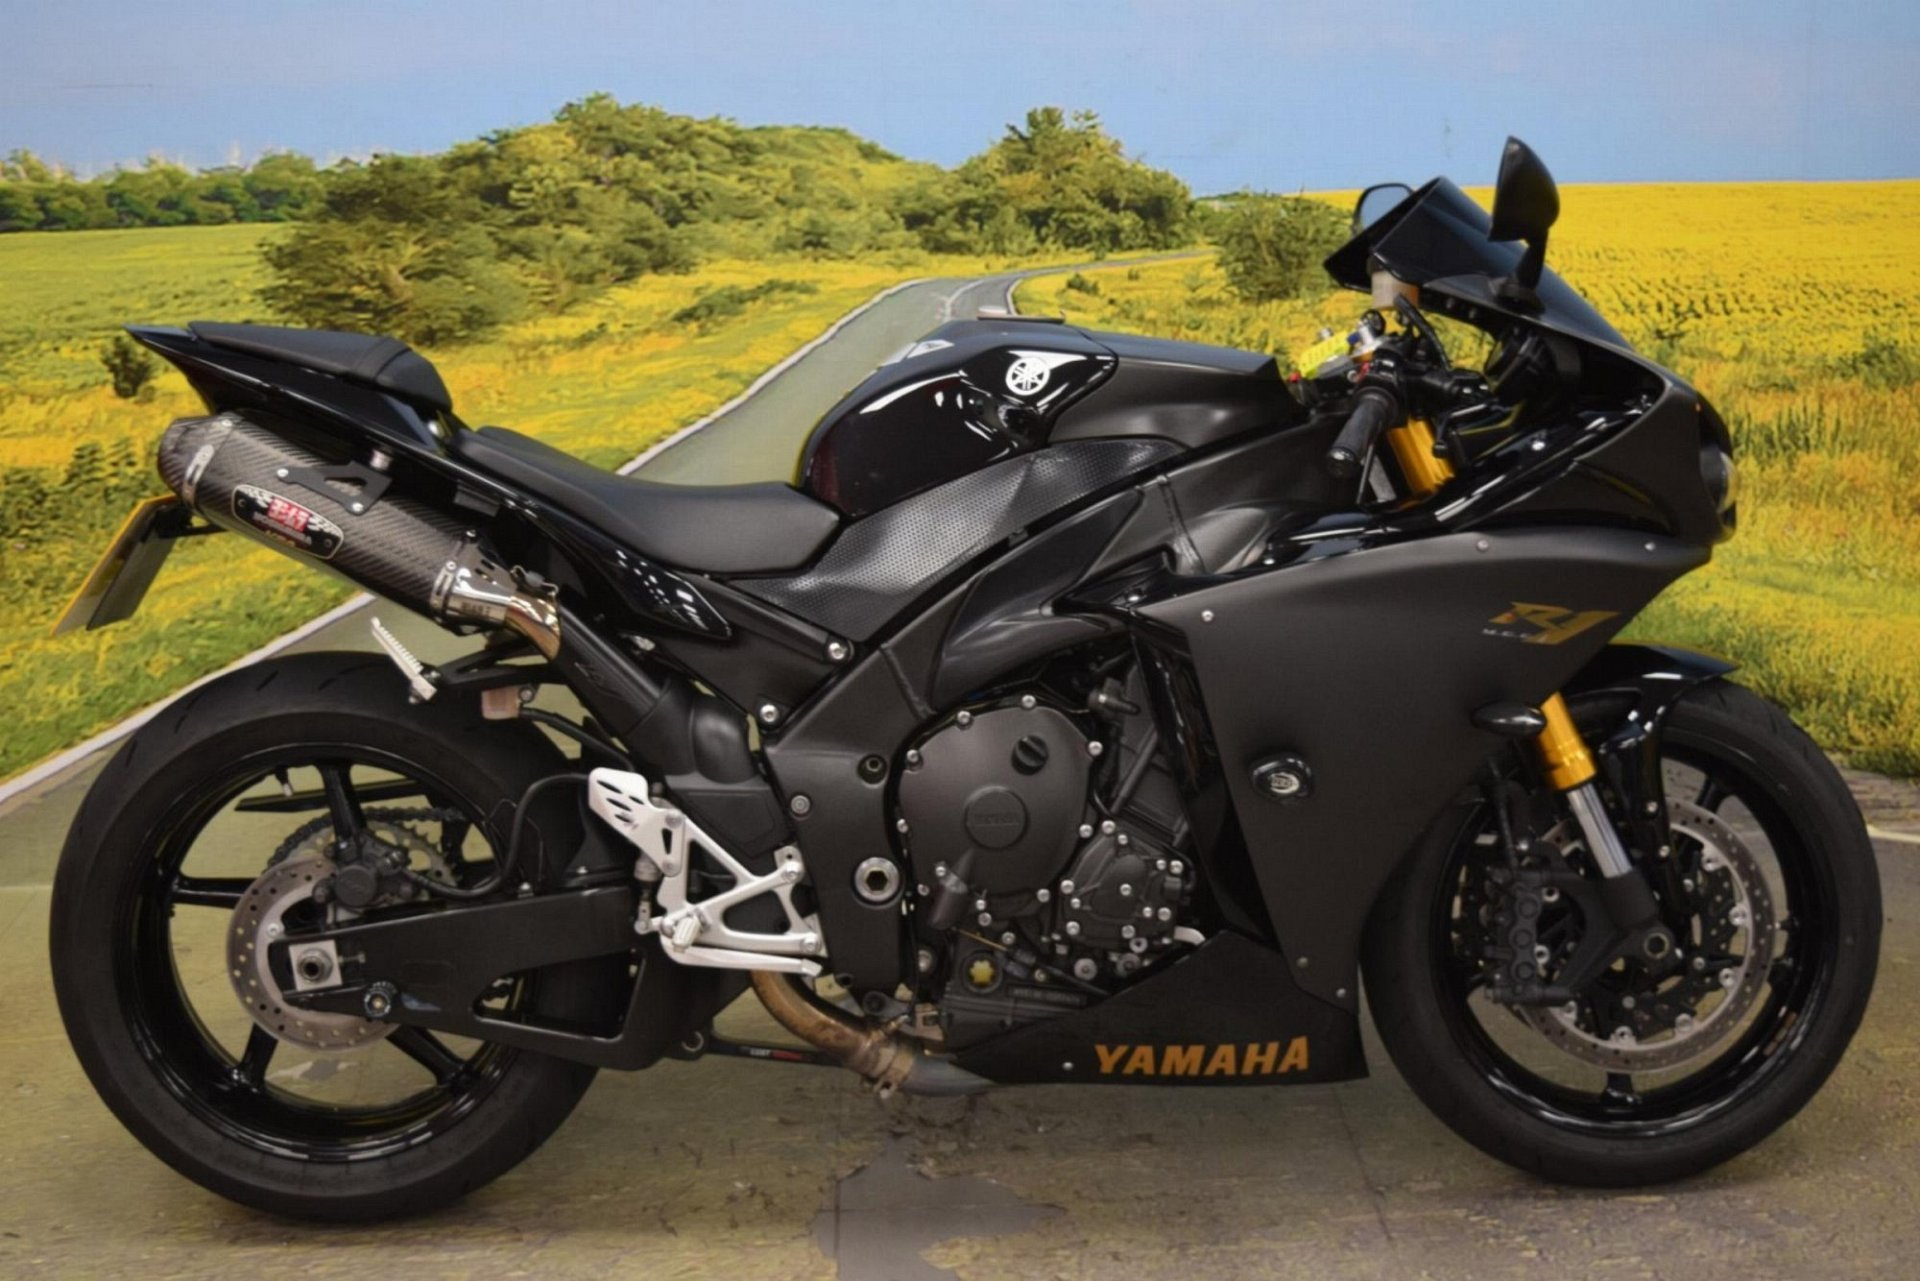 2010 Yamaha YZF R1 for sale in Staffordshire